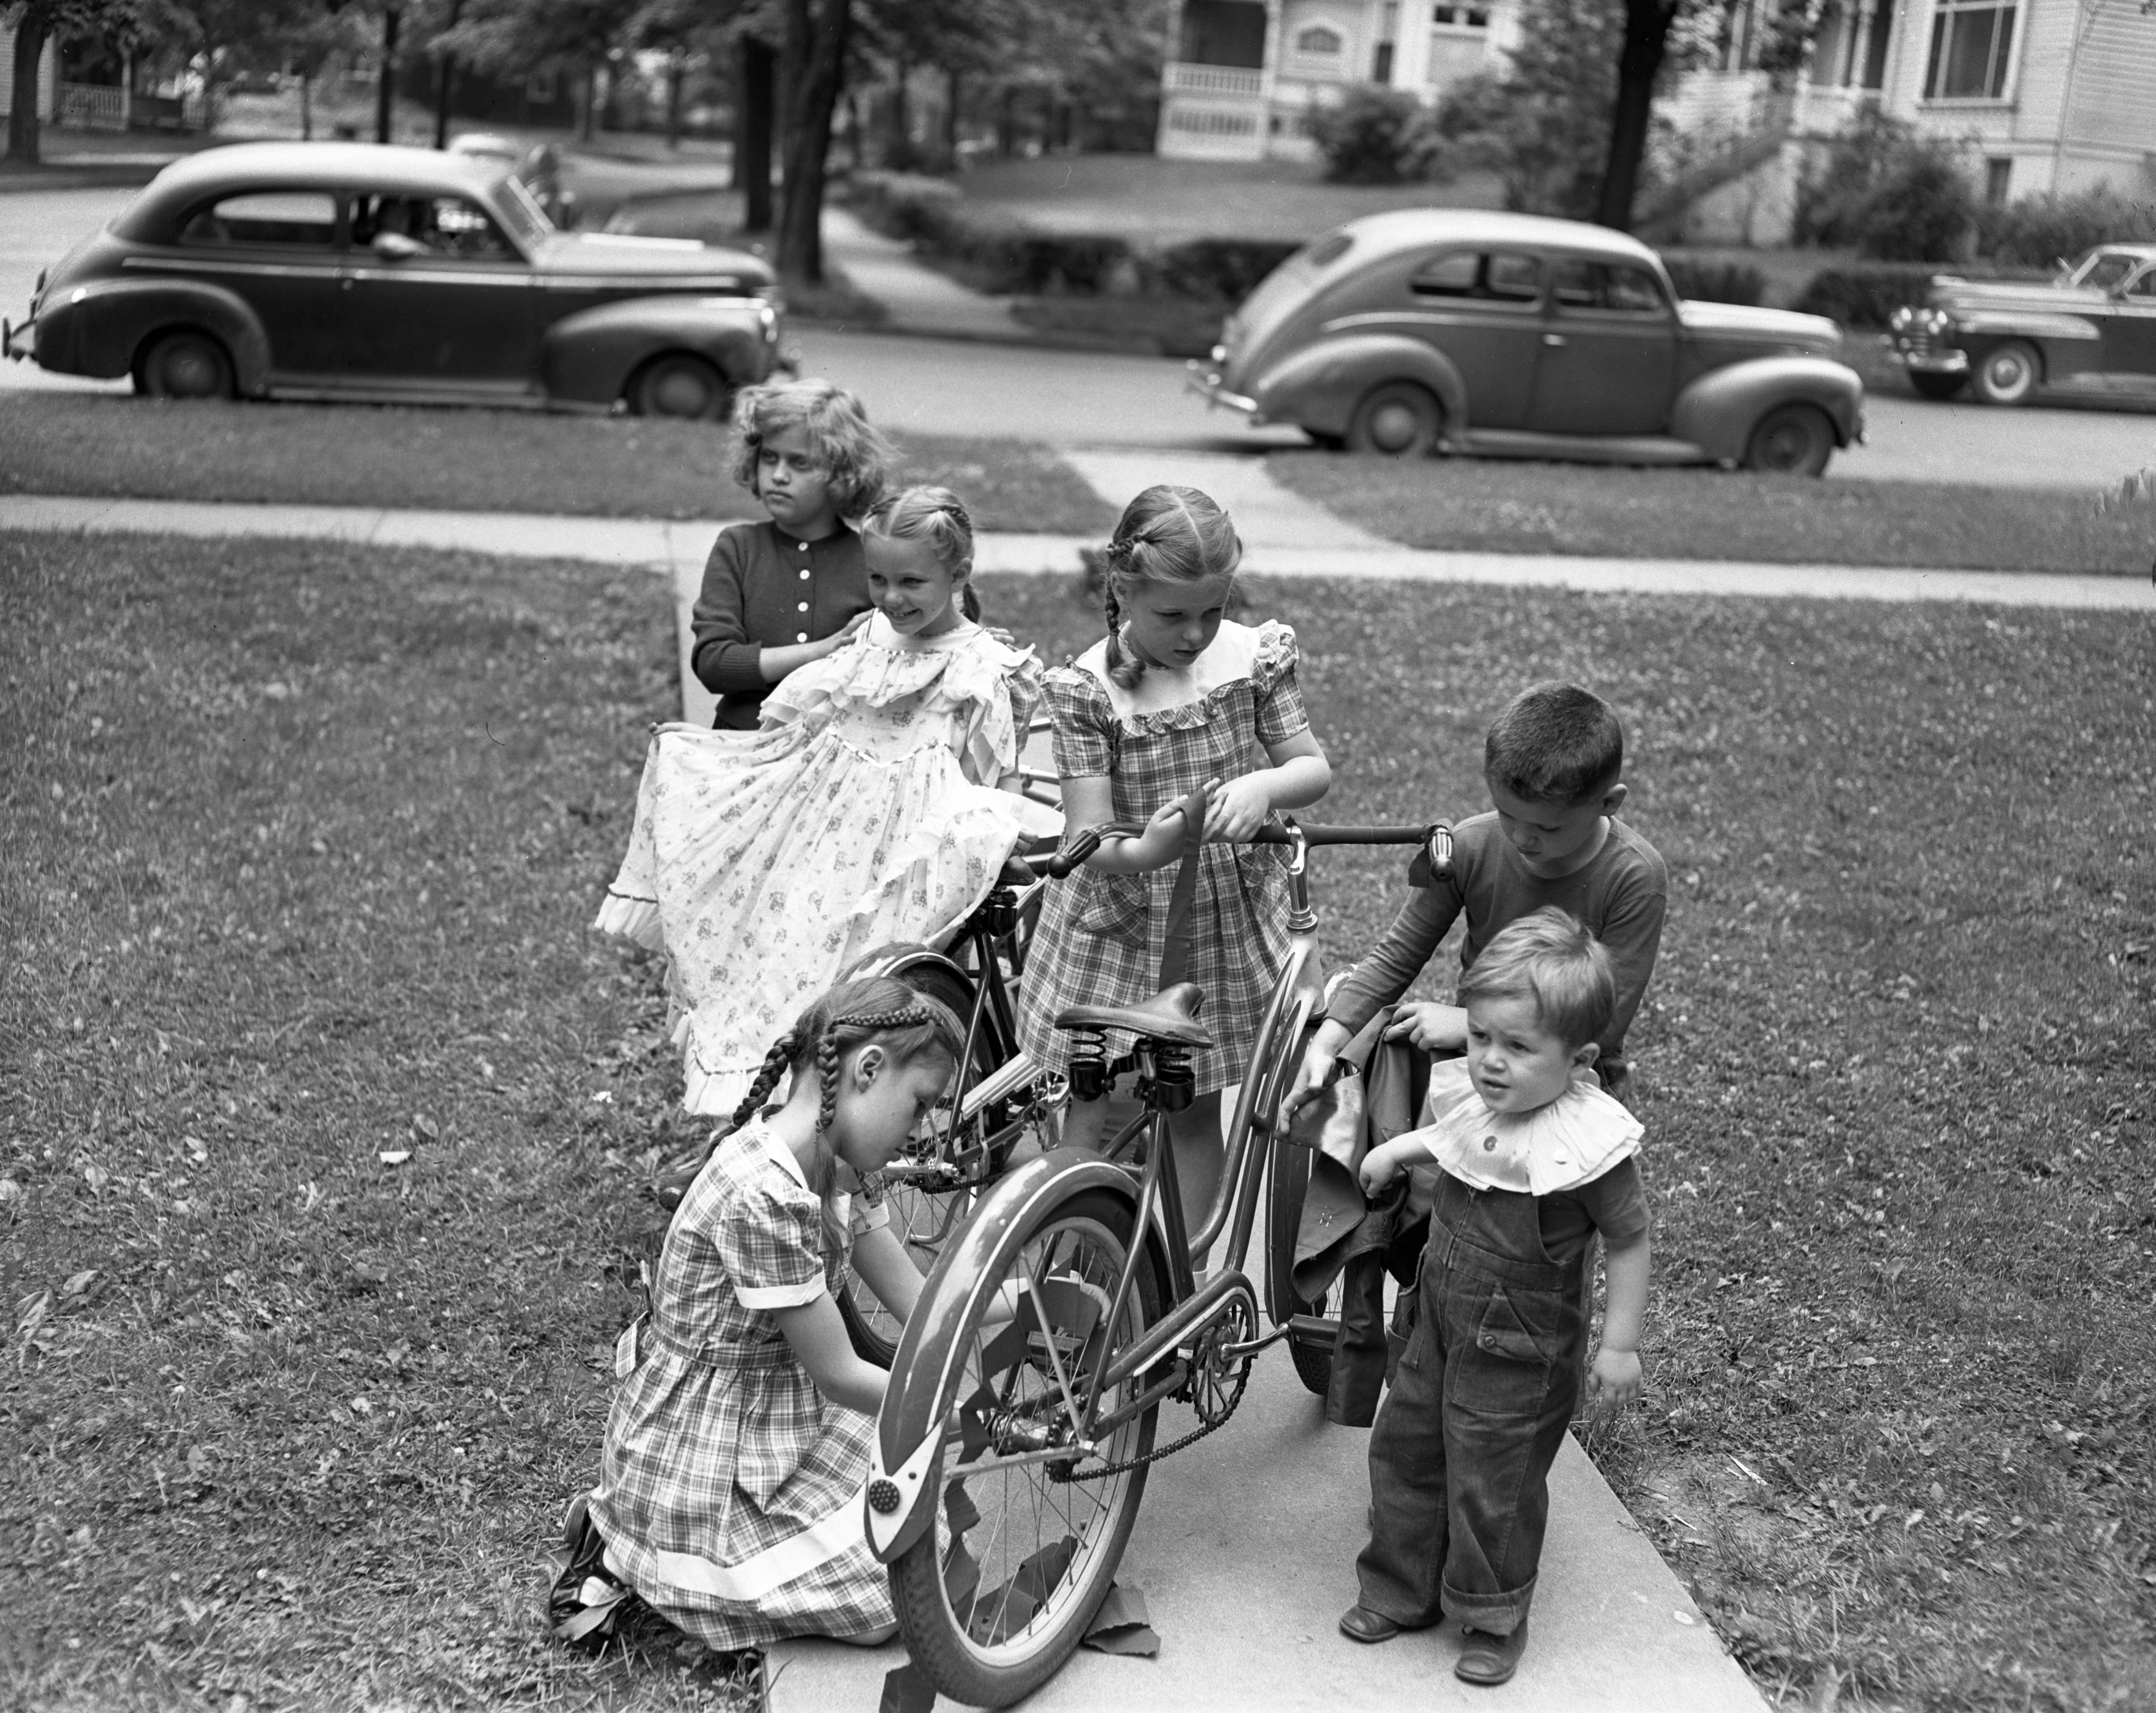 Ypsilanti children prepare for Children's Parade, June 1948 image